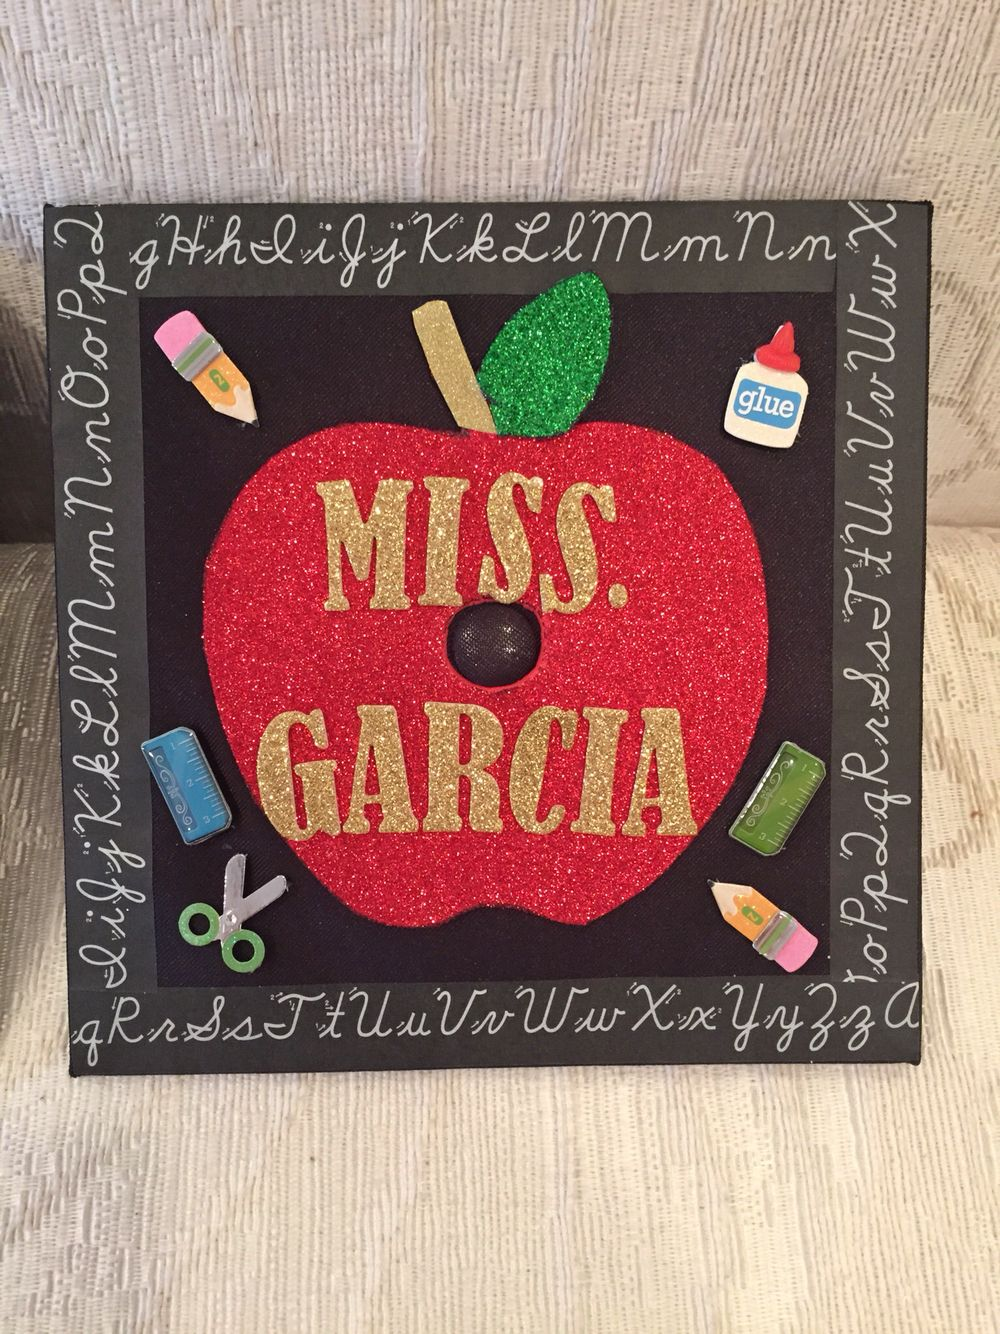 How To Decorate Your Graduation Cap Tips Tricks Ideas Her Campus